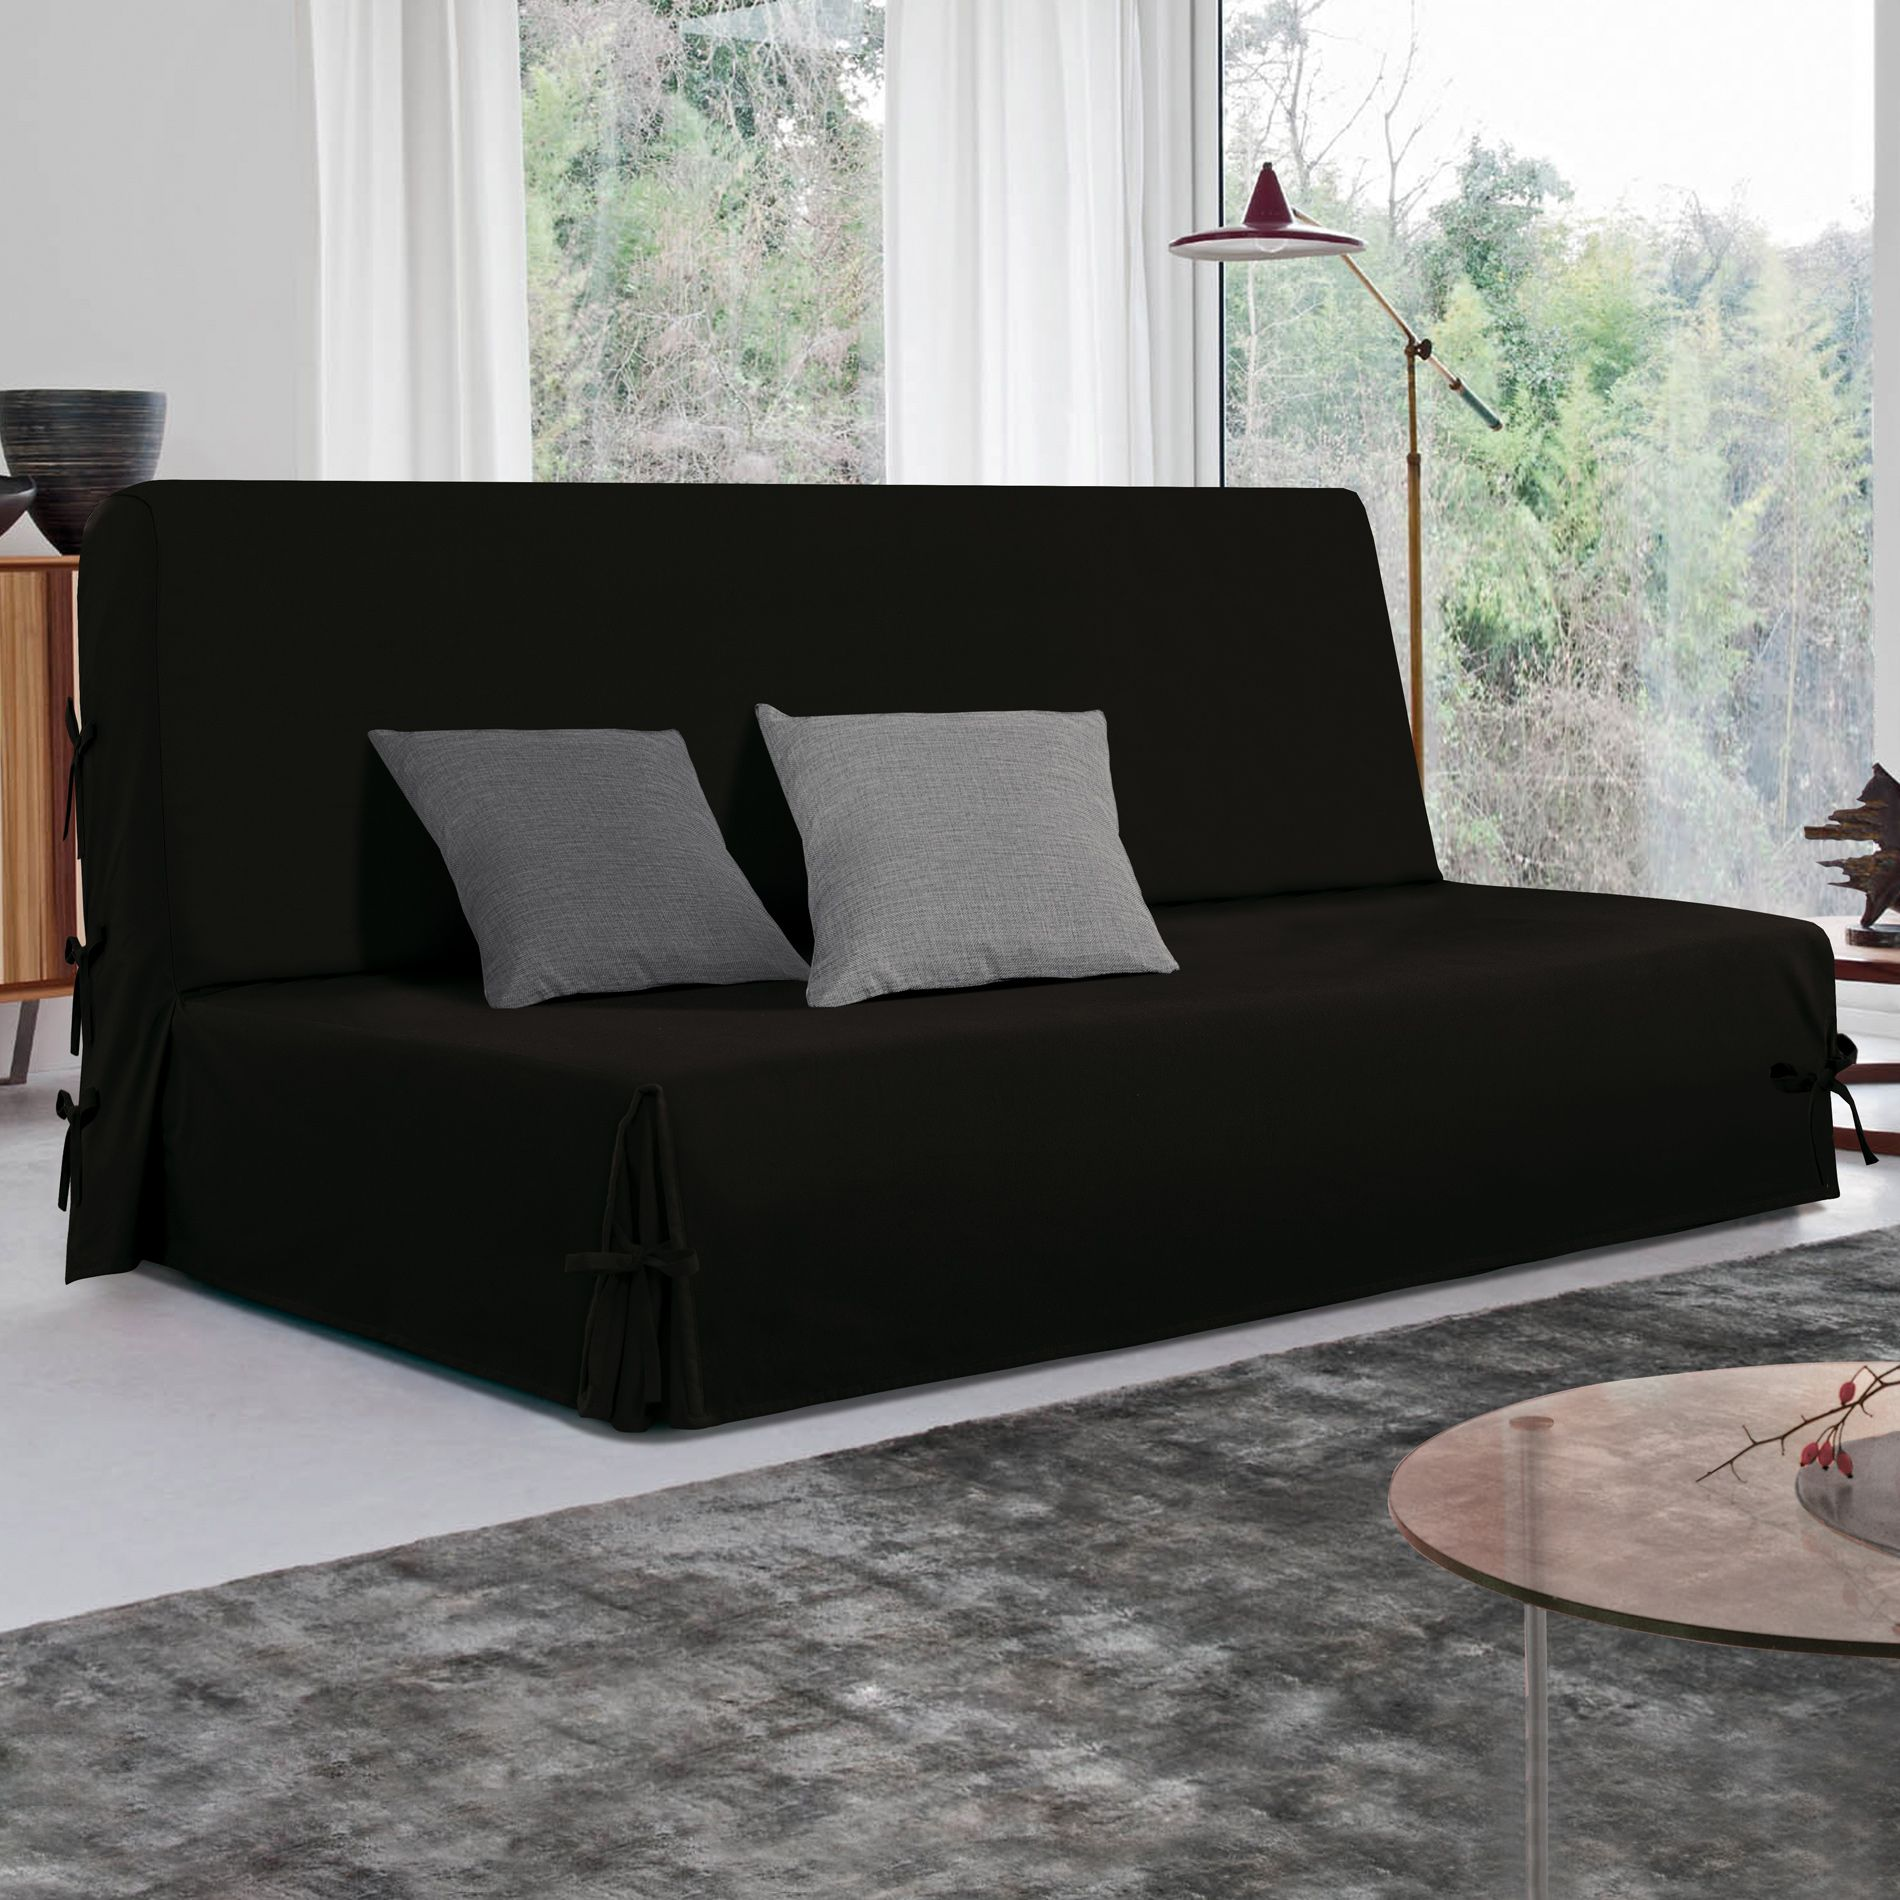 bz clic clac stunning matelas pour banquette bz mousse a. Black Bedroom Furniture Sets. Home Design Ideas